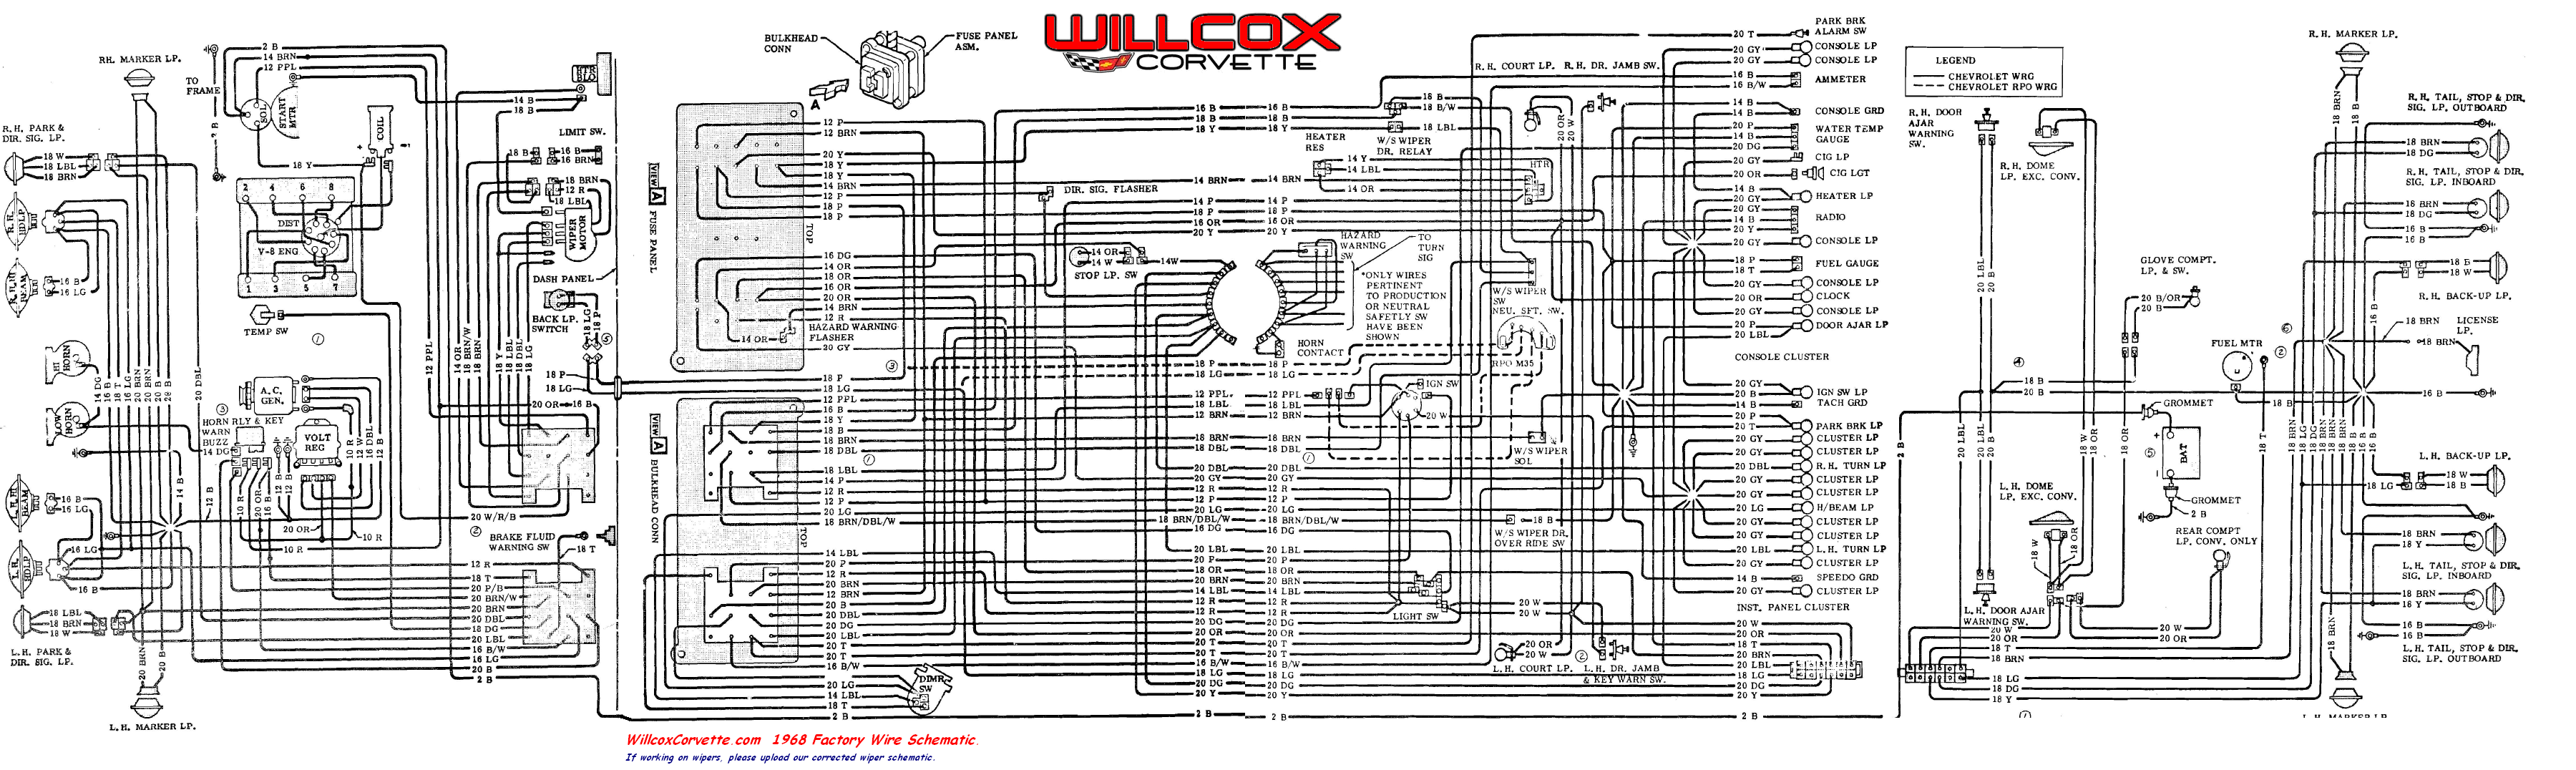 C3 Corvette Wiring Diagram from repairs.willcoxcorvette.com